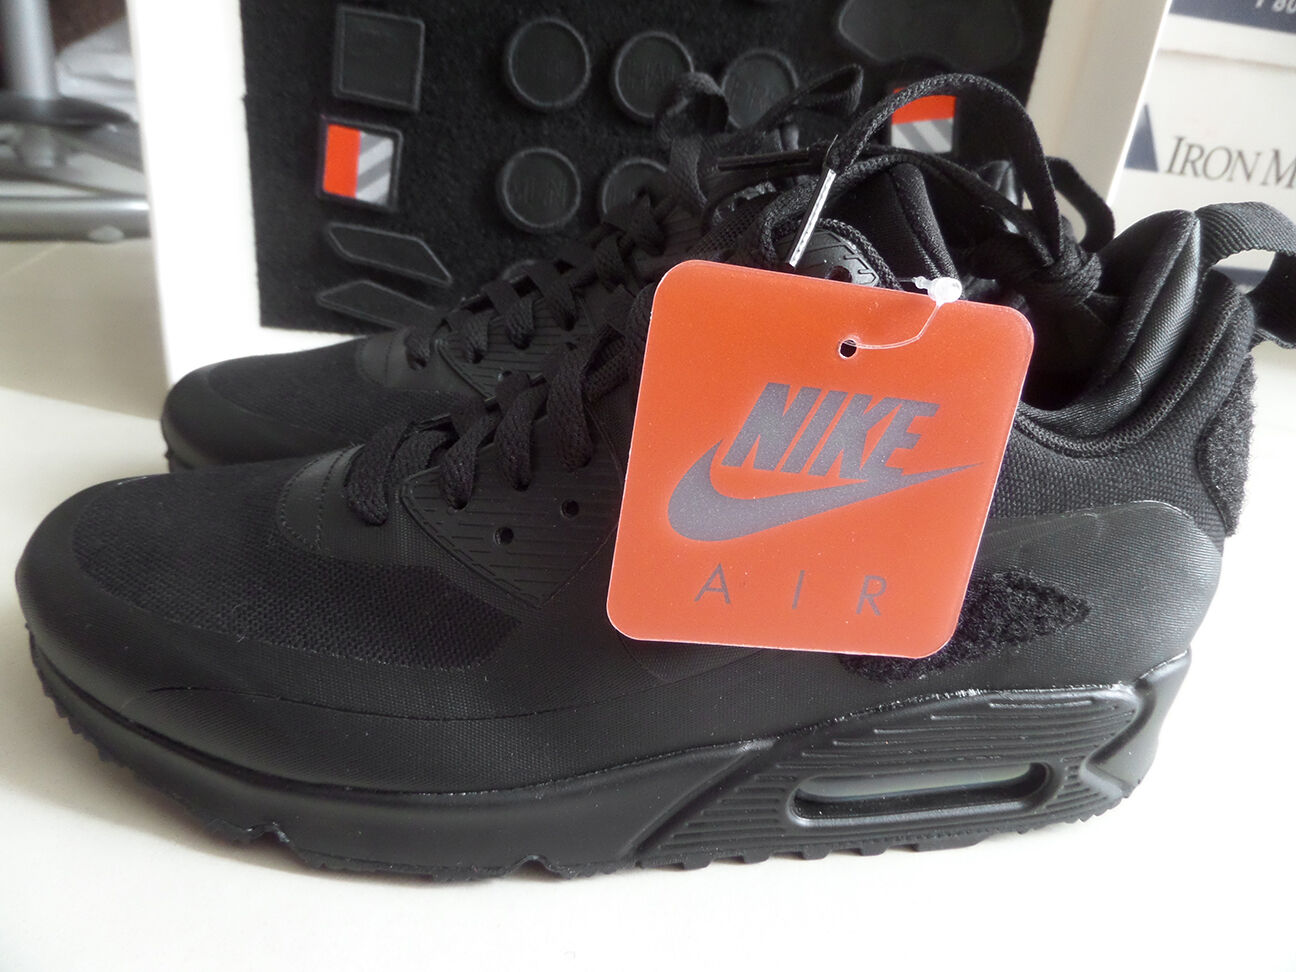 67b004642e0 100% Auth Nike Air Max 90 Sneakerboot SP 'Patch' Black/Black sz 7 ...